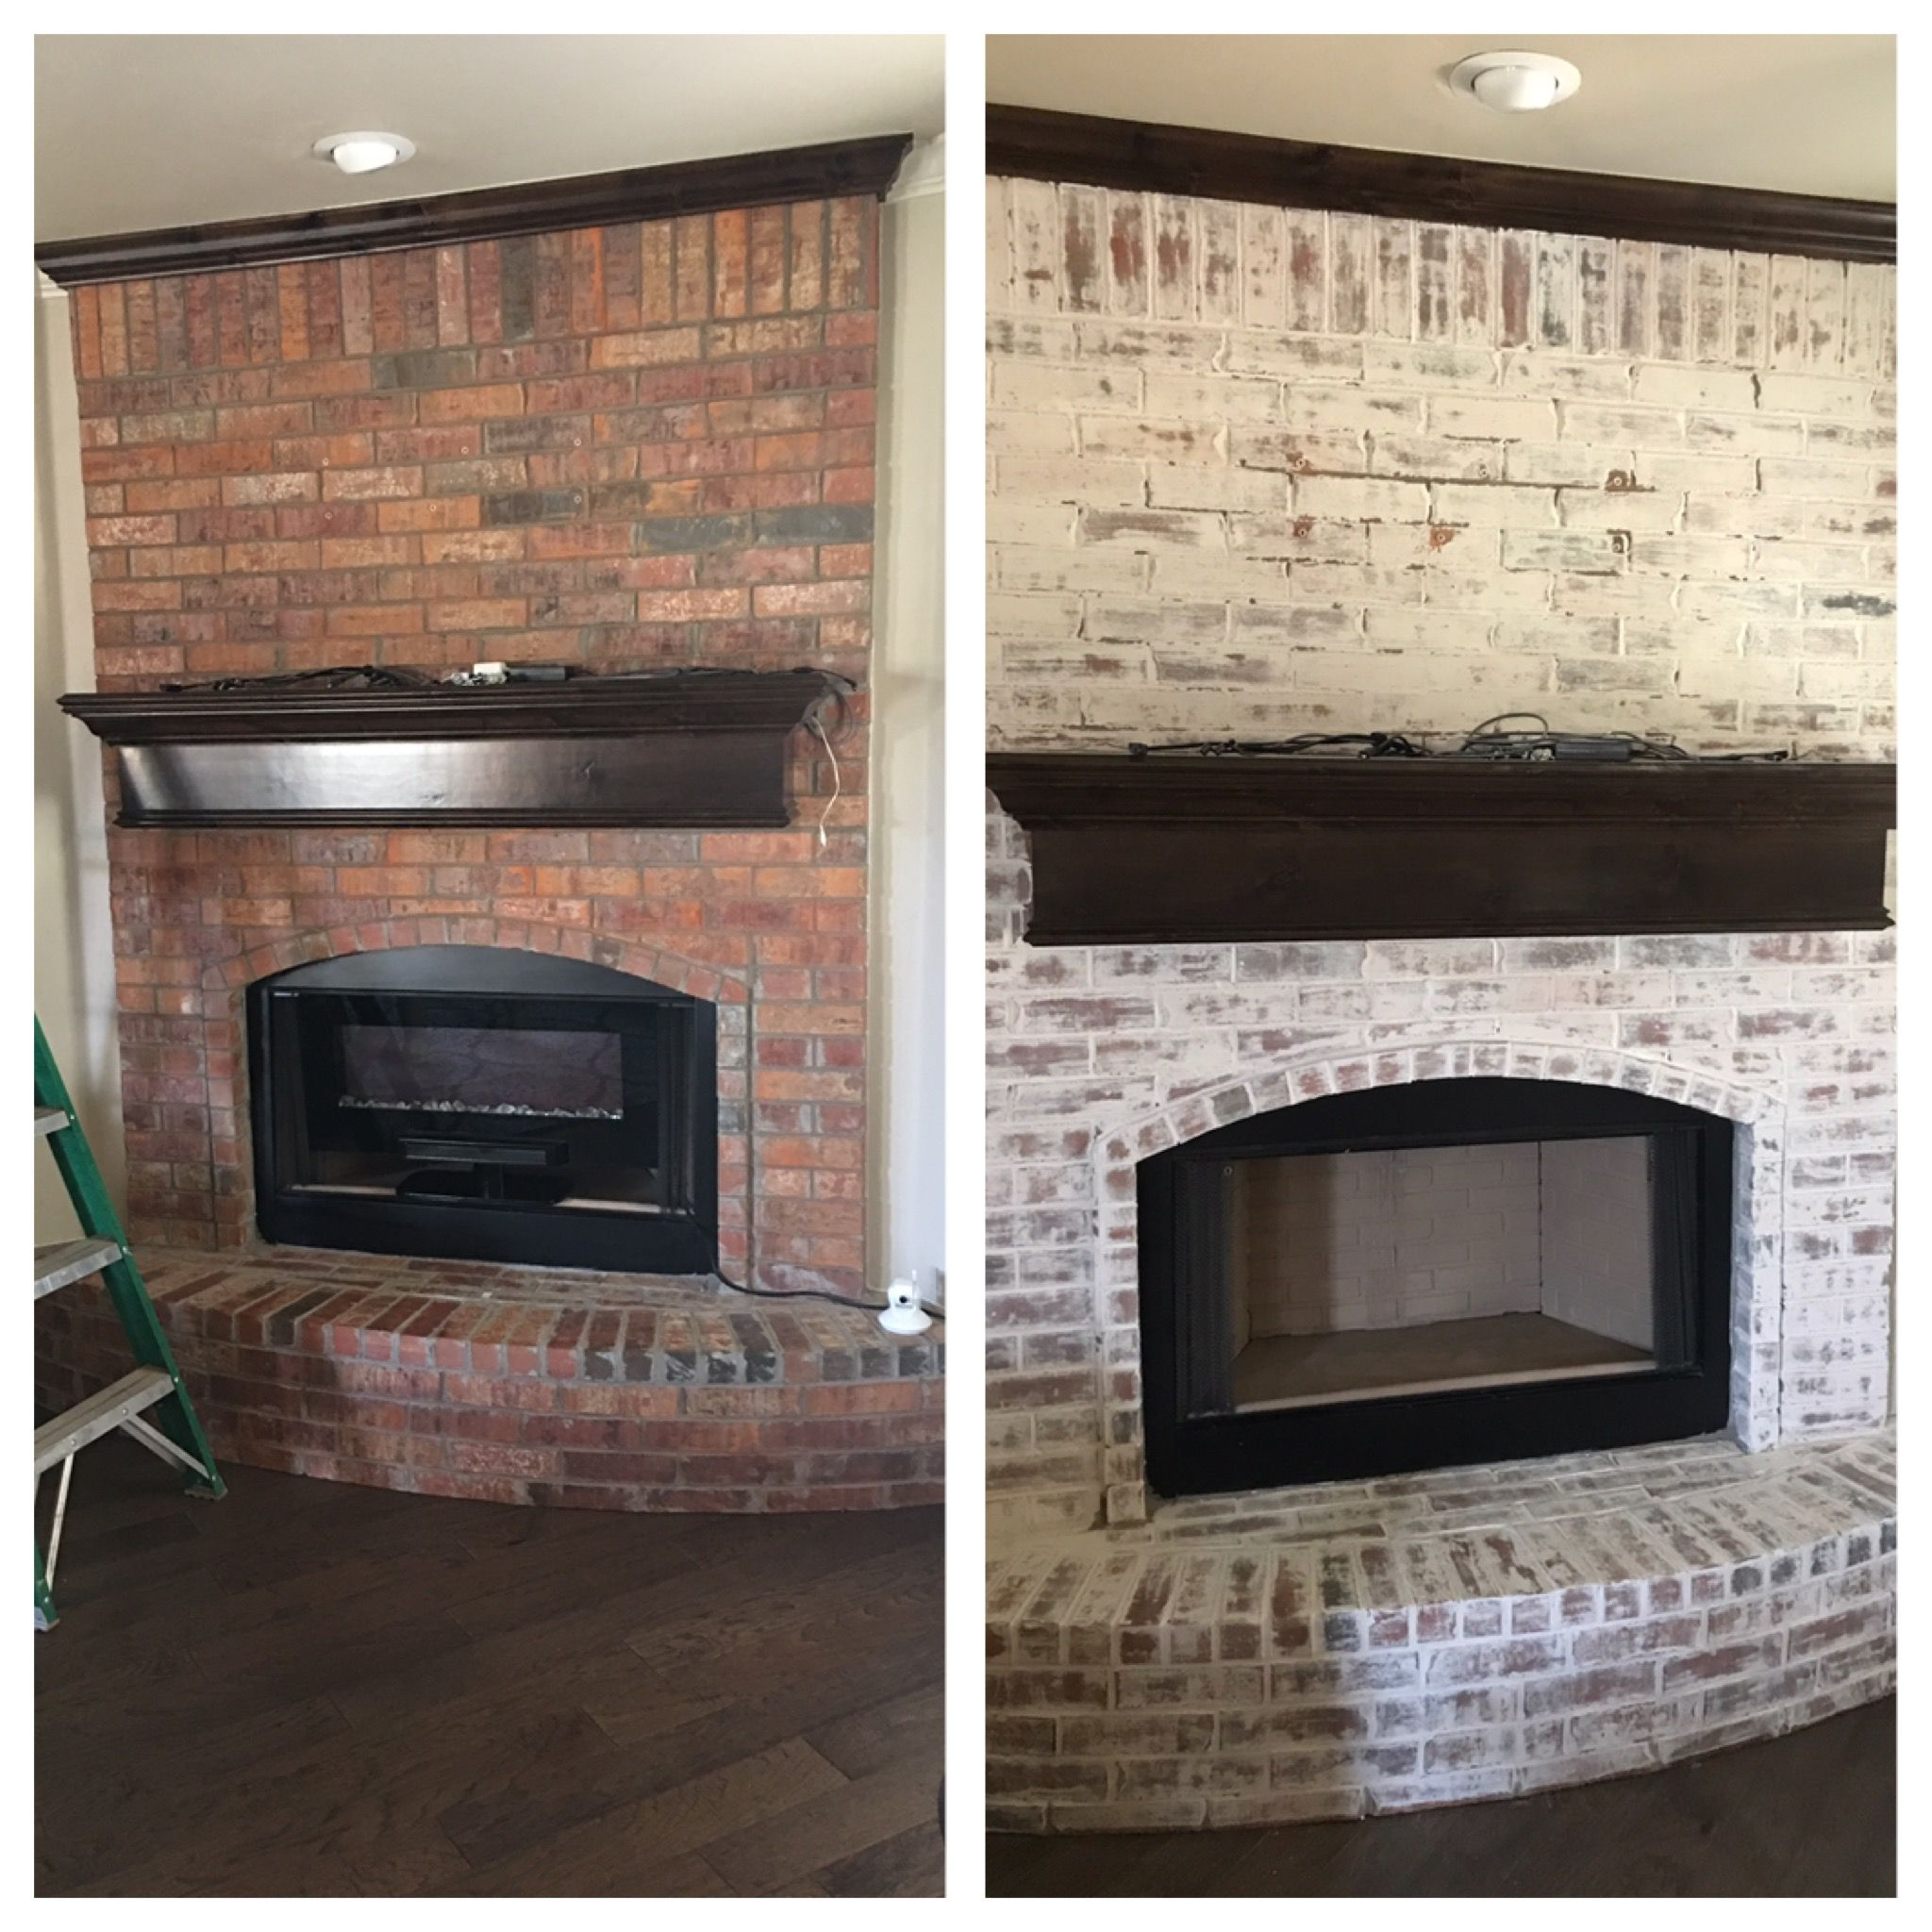 Before And After Plaster Smeared Fireplace German Smear Fixer Upper Inspired Our Future